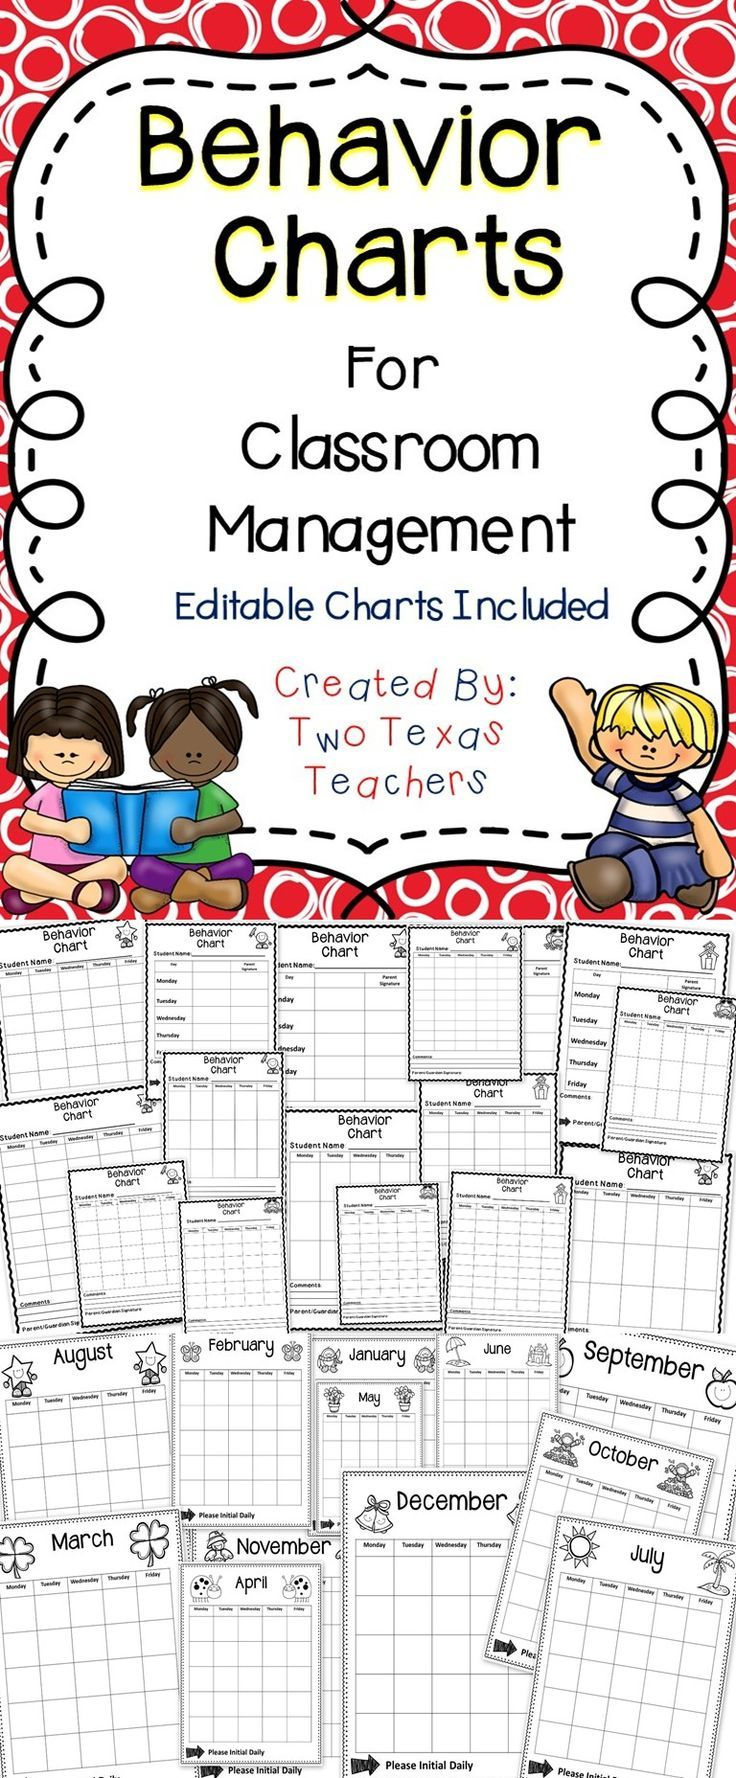 Behavior Charts This Is A Set Of Editable Behavior Charts For The